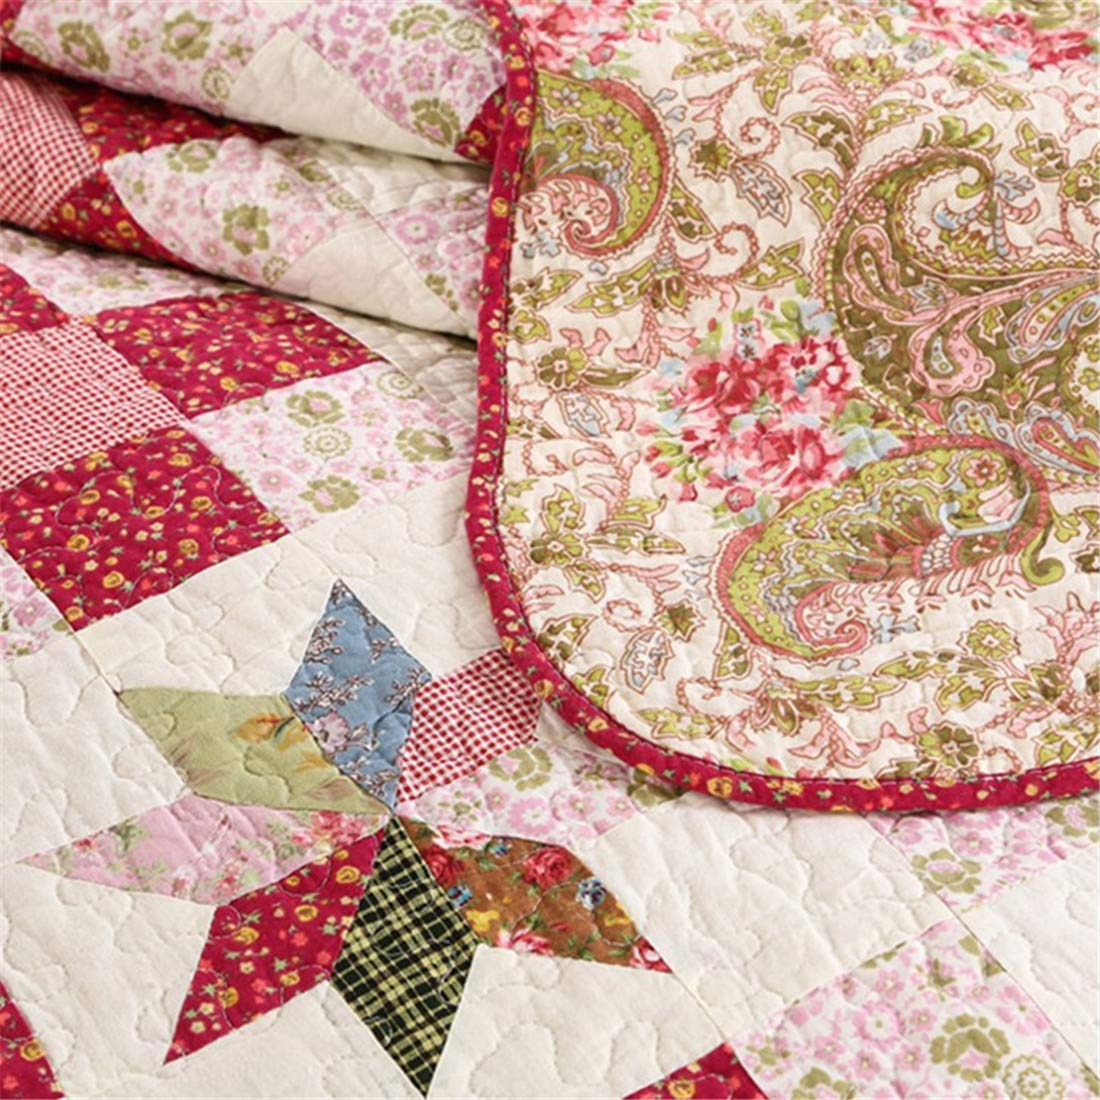 Jameswish Rust Patchwork Quilt Set Cotton 3 Pcs Bedspread Queen Size Reversible Paisley Florals Coverlet Set Bed Cover Set Quilted Blanket for Full and Queen Size Bed